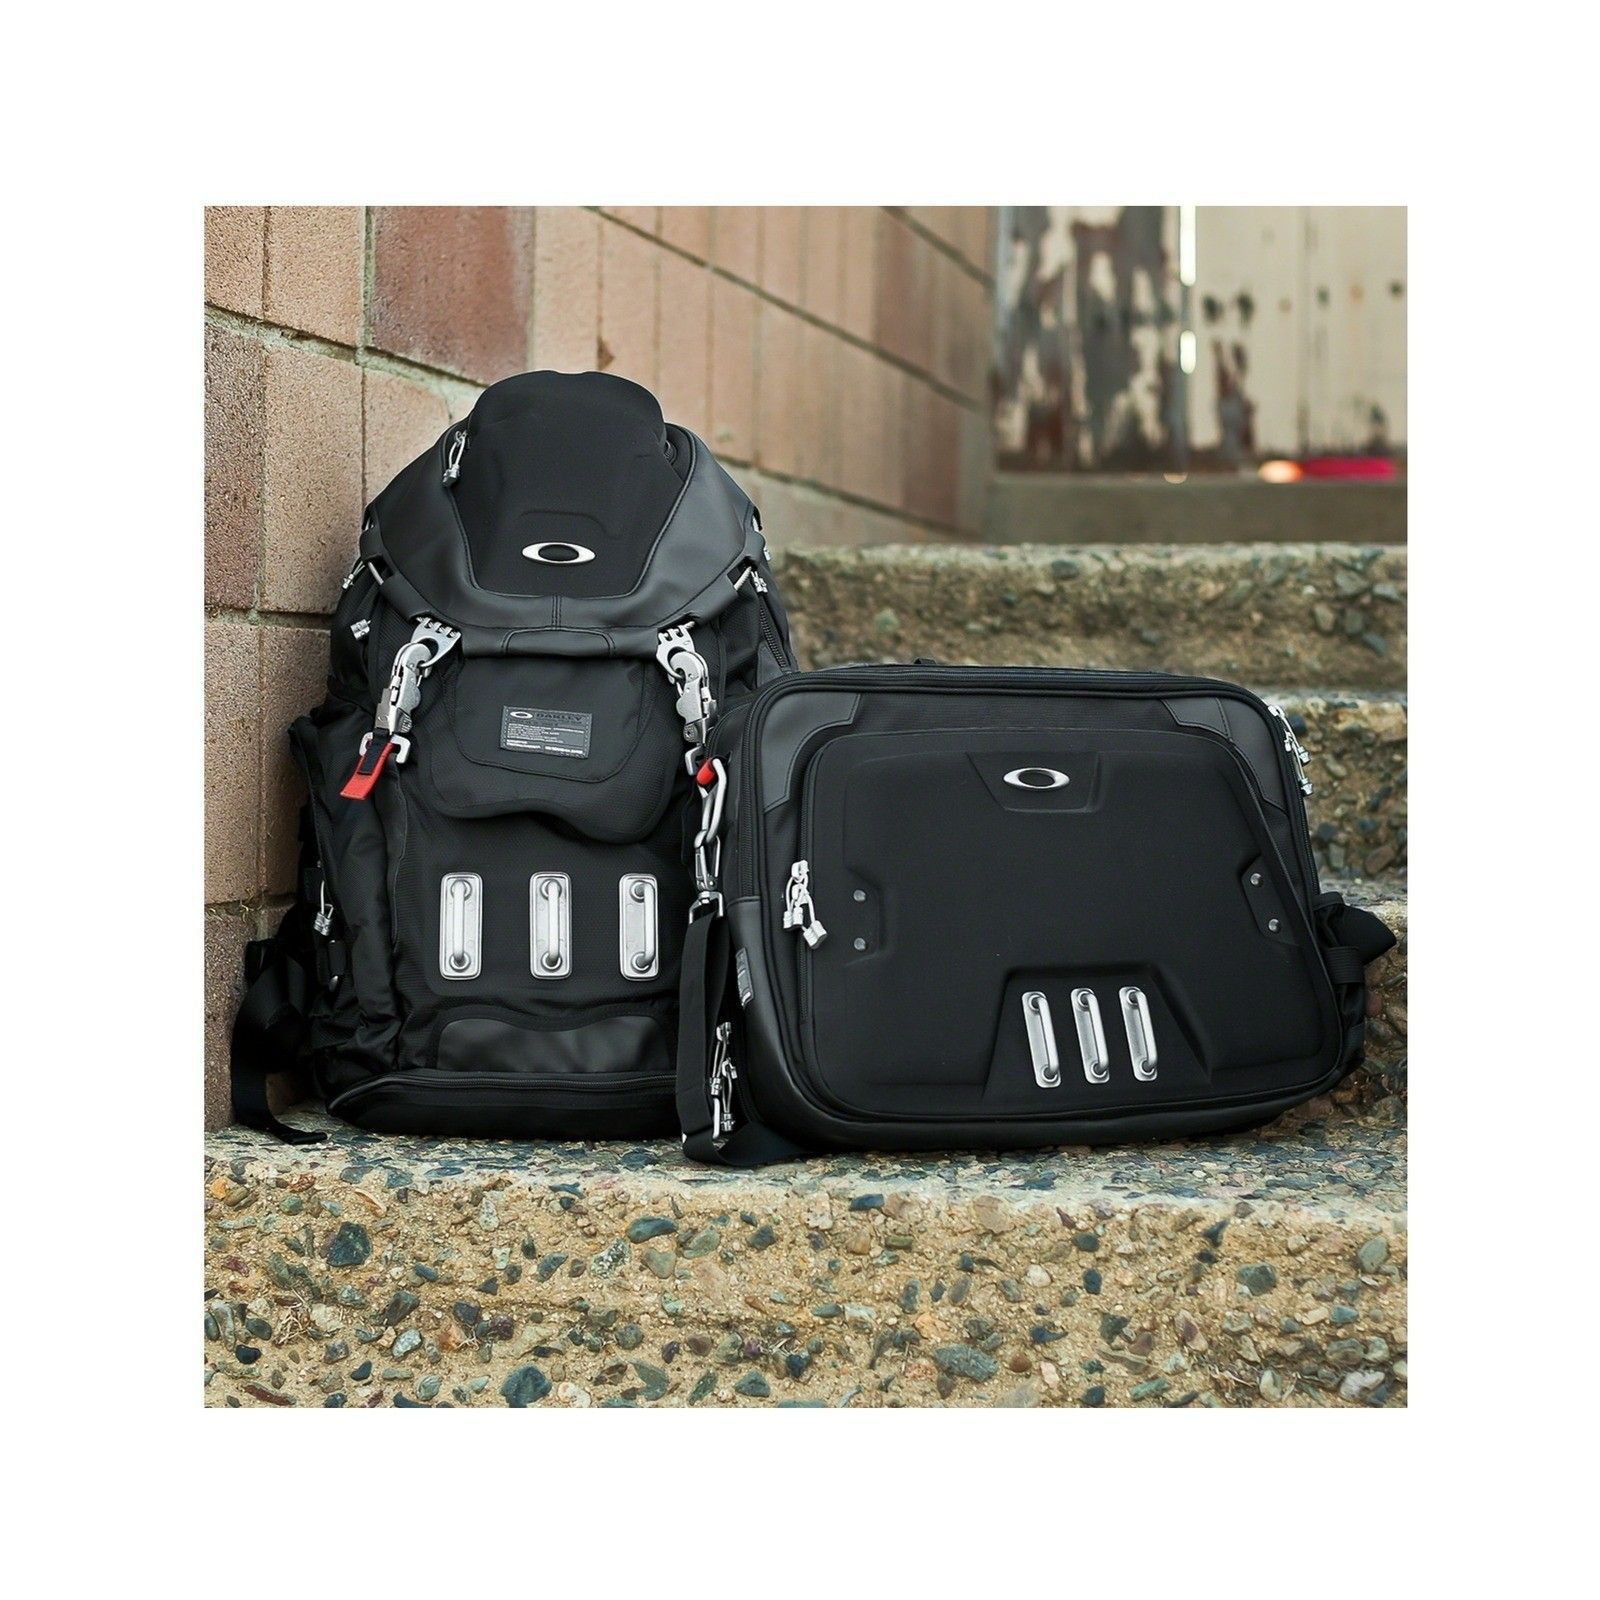 Home office bag - alternate_92606-001_home-office_black_d20_52152_png_zoomsq (1).jpg